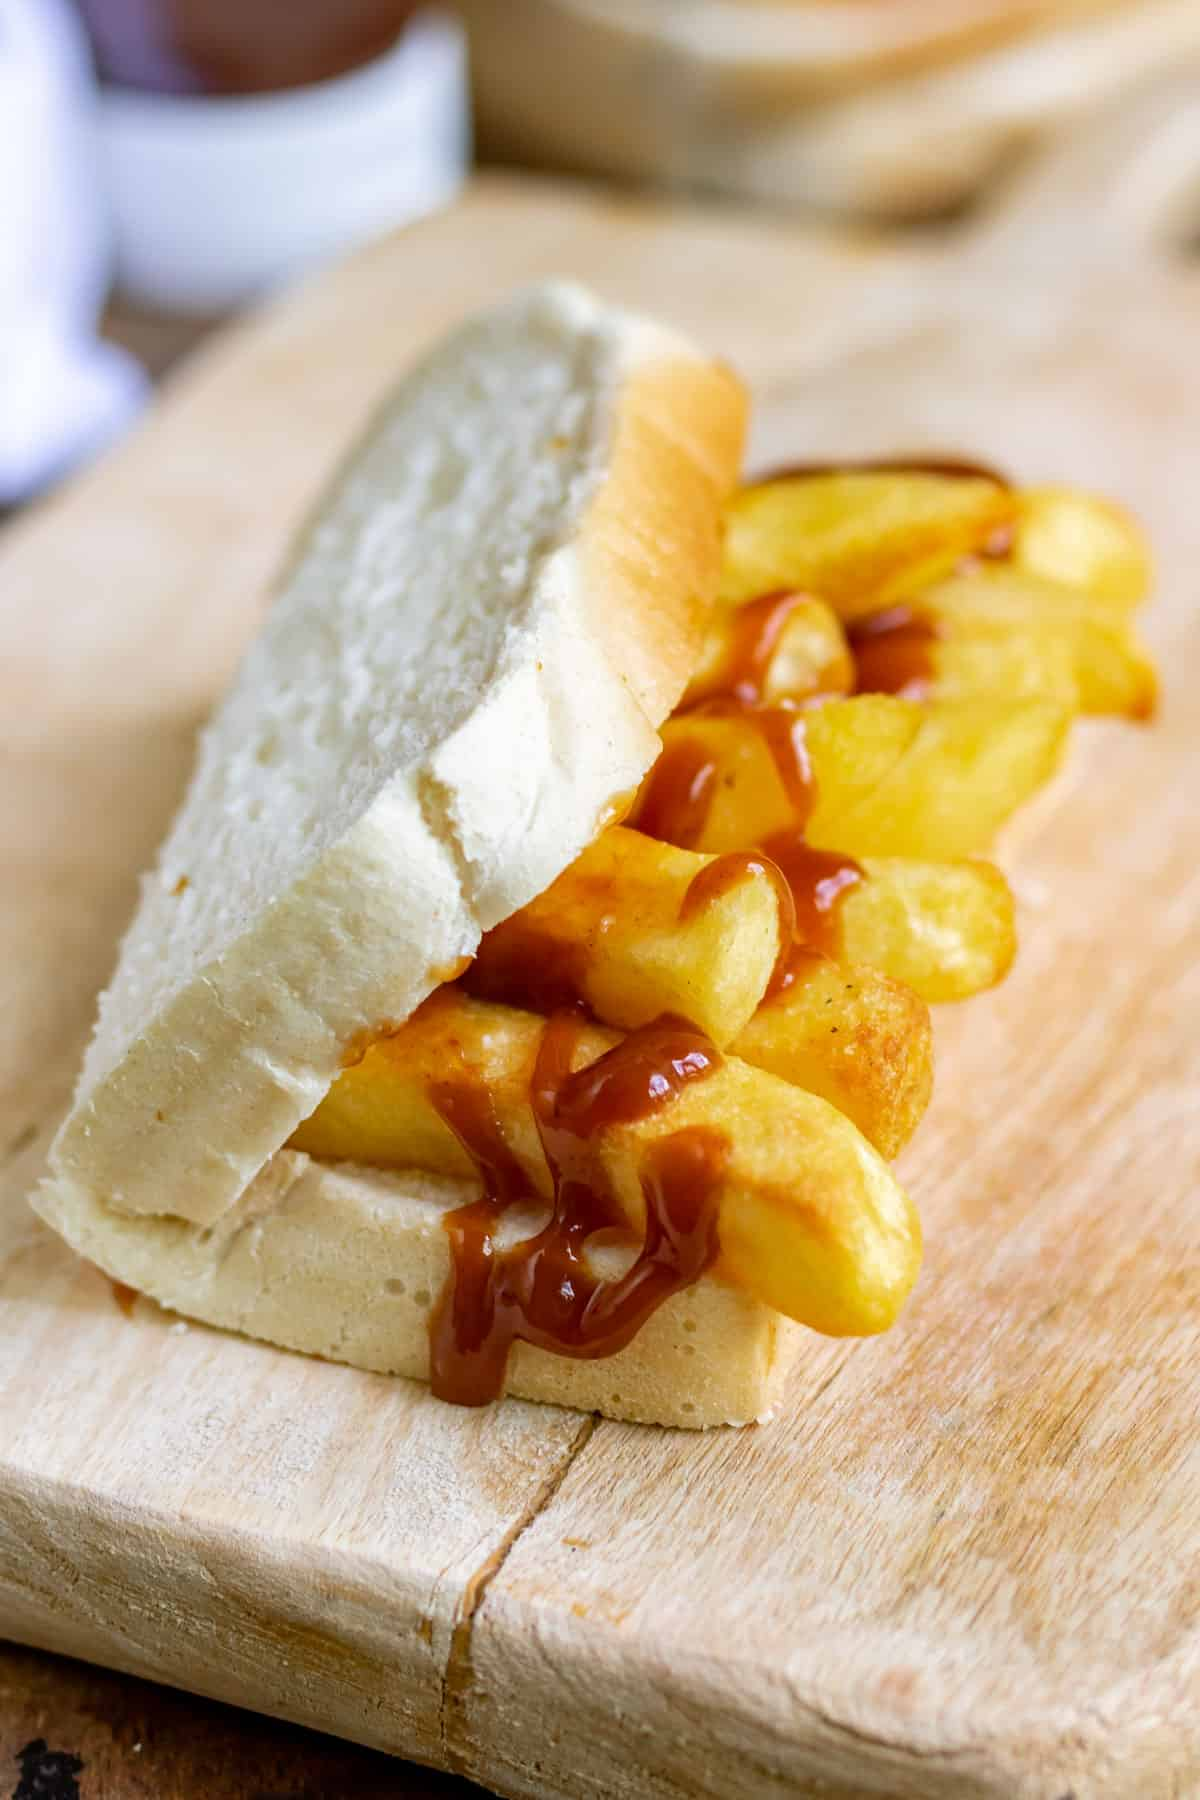 A folded chip sandwich with HP Sauce.